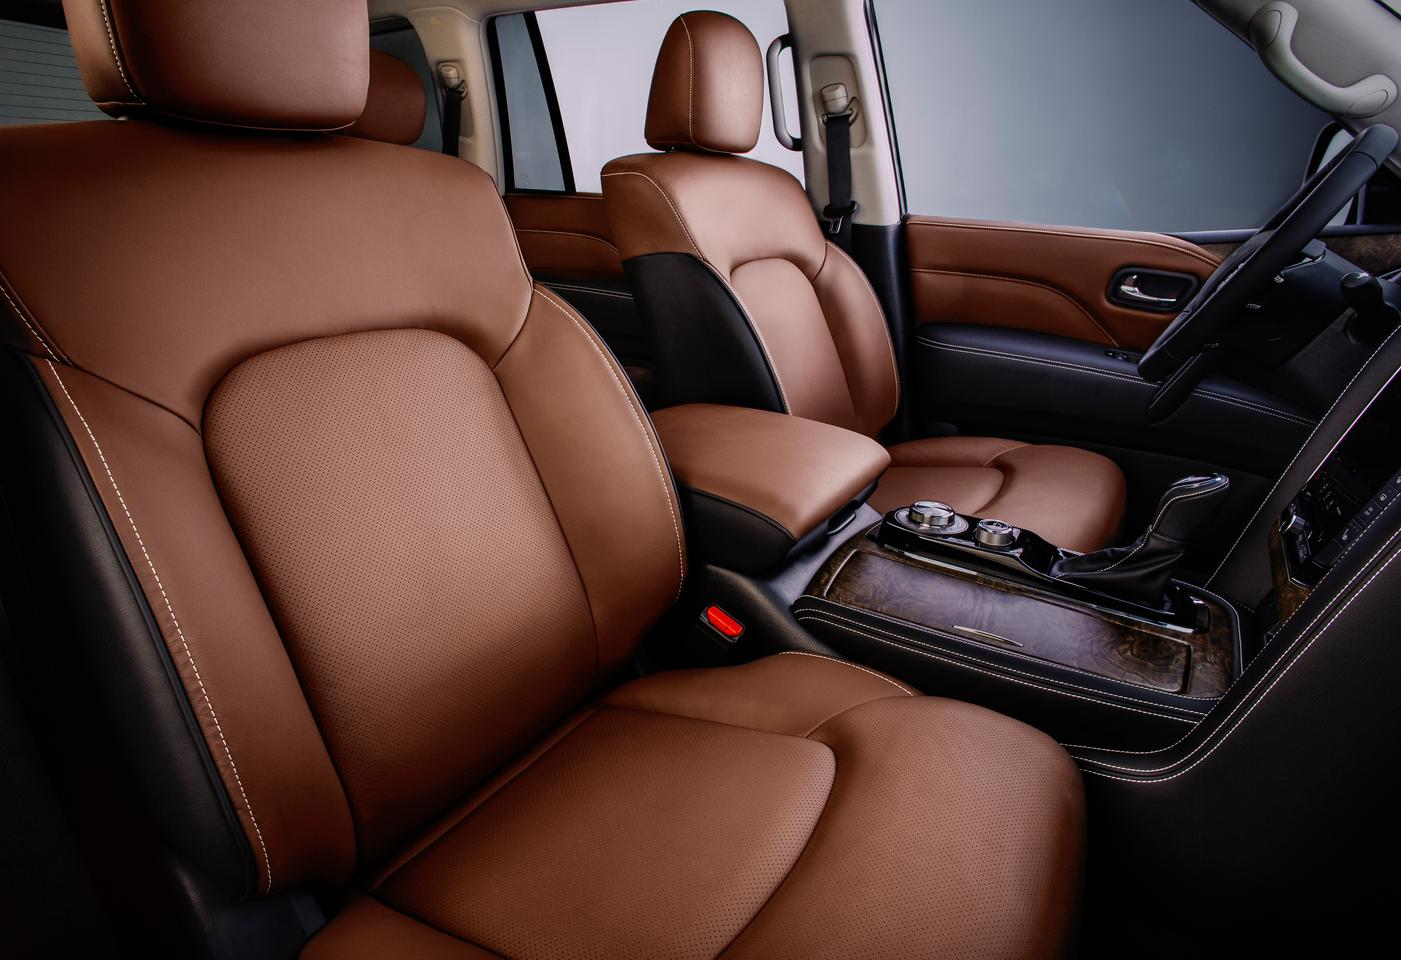 The 2020 QX80's interior is a bit dated compared to other luxury SUVs on the market, but still very lush and comfortable